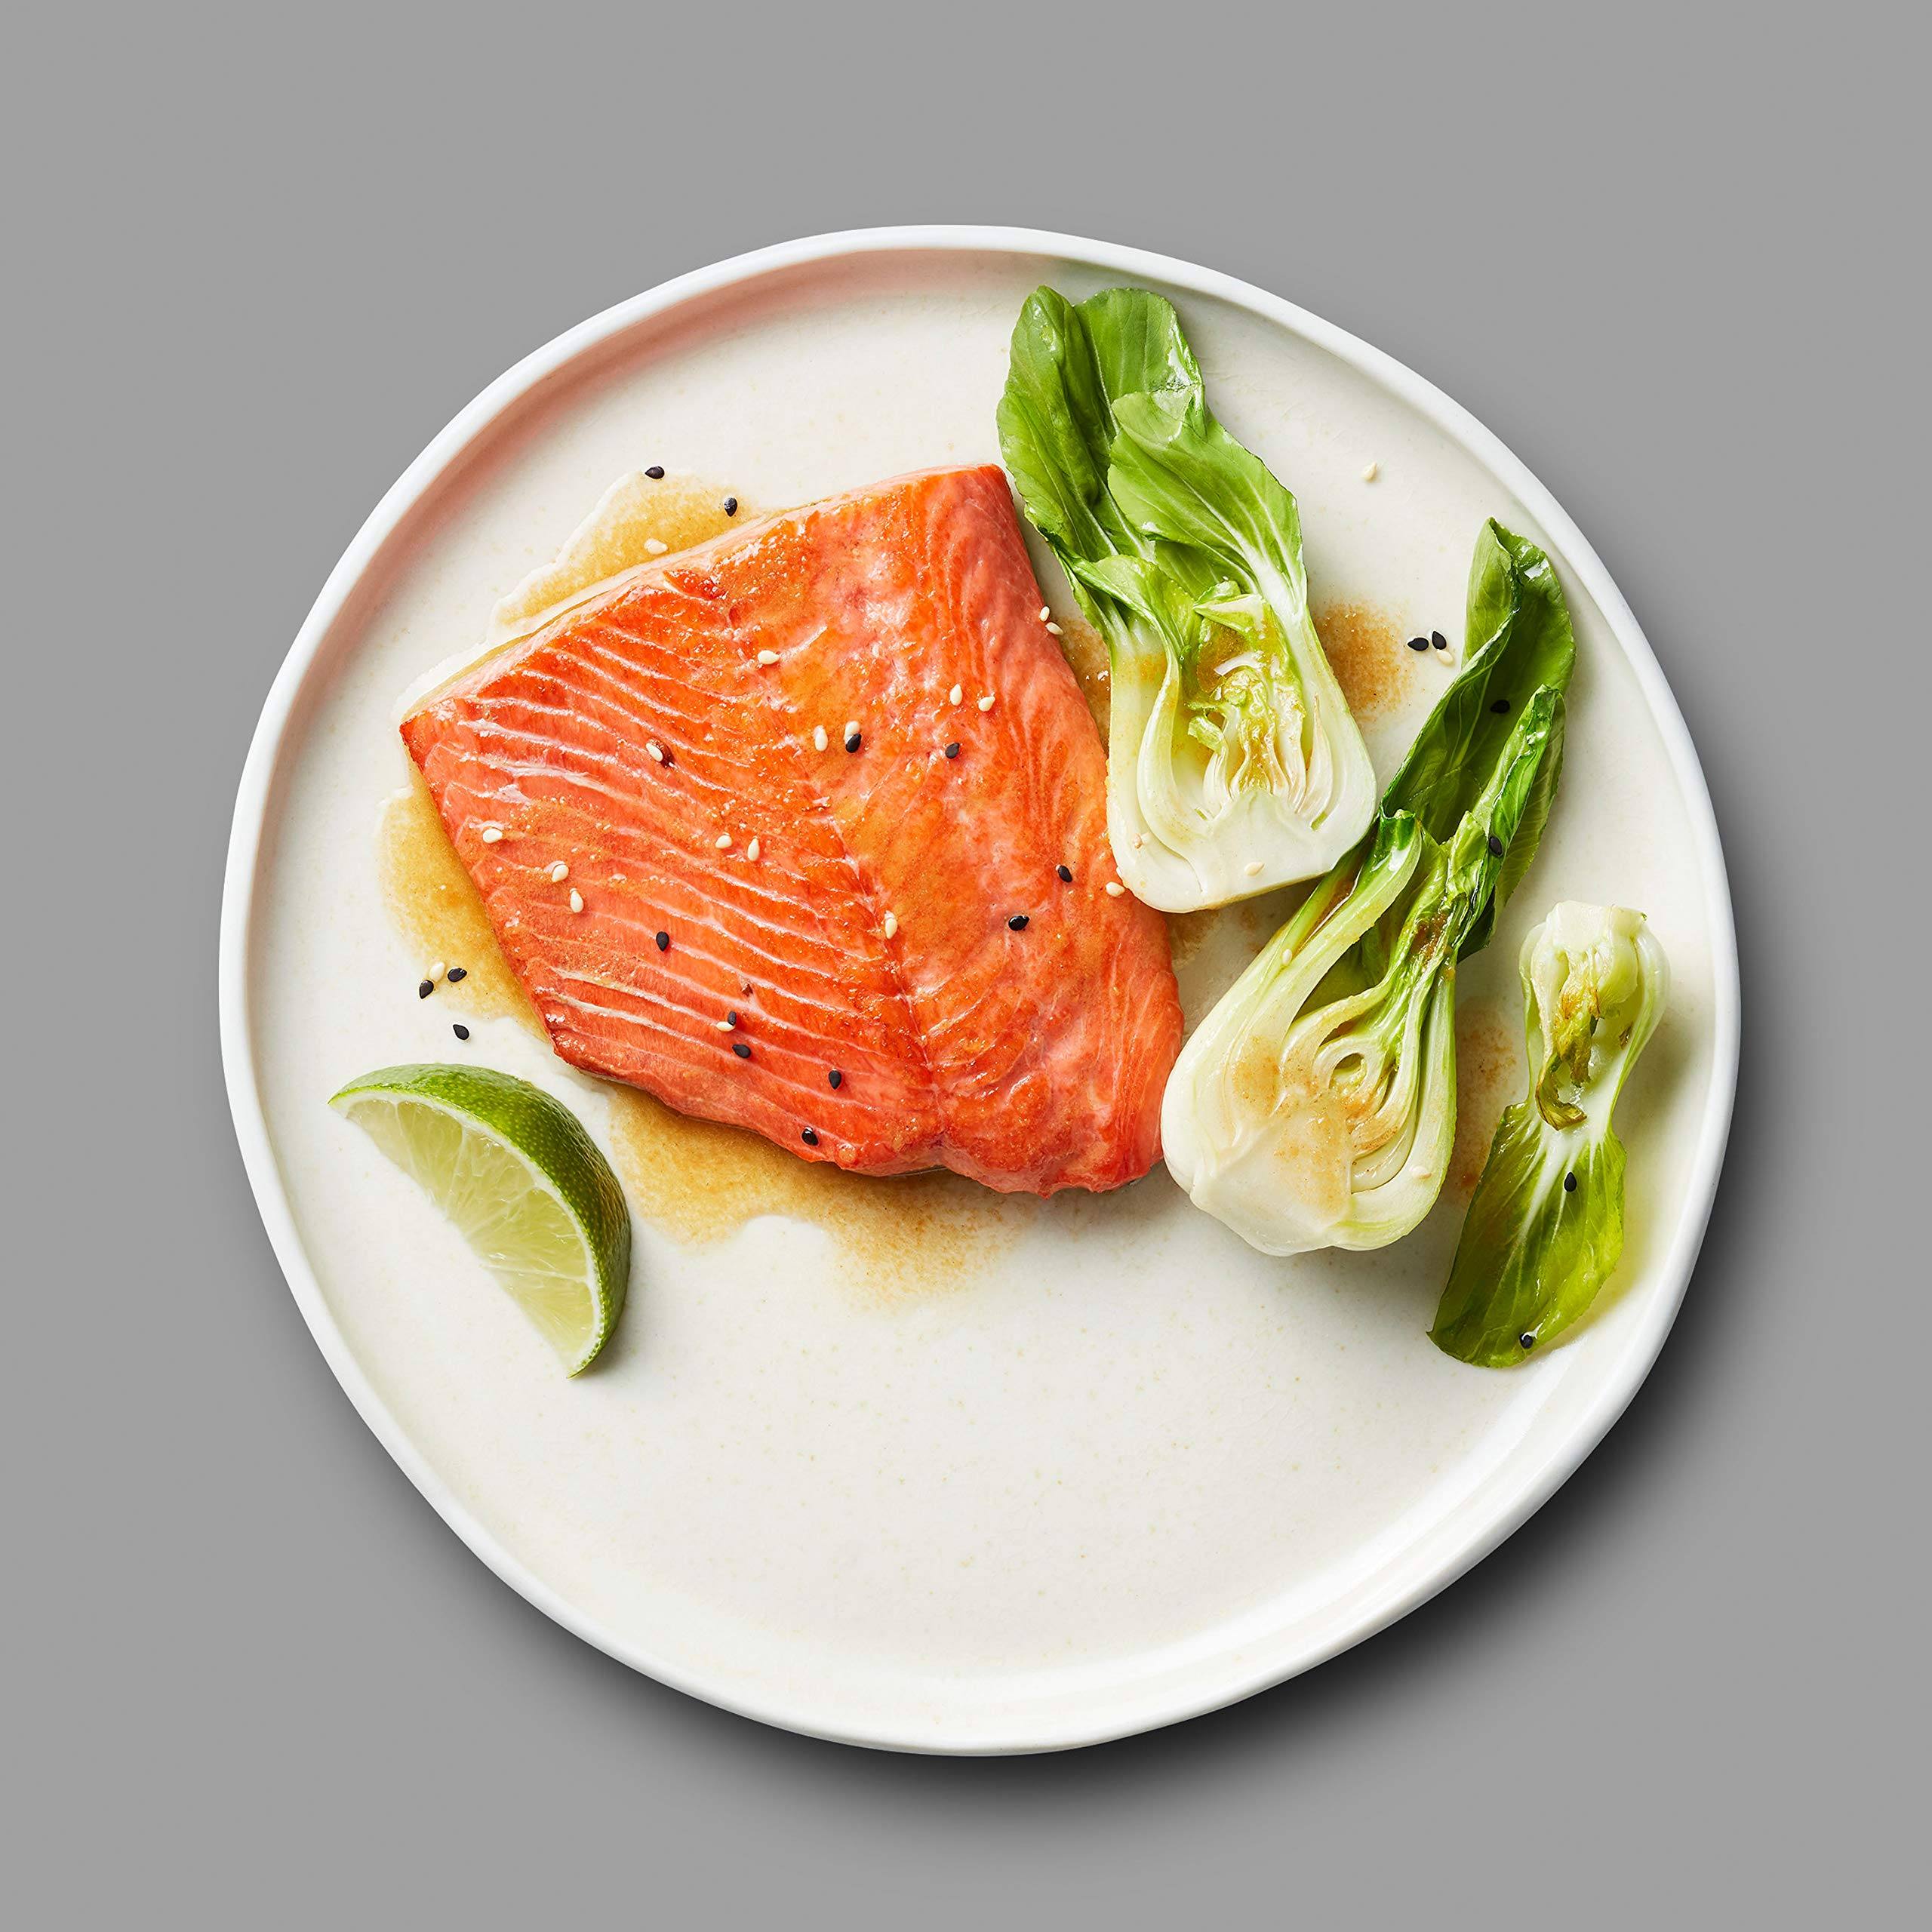 Martha Stewart for True North Seafood: Simple and Easy Sockeye Salmon with Miso Butter and Atlantic Salmon with Lemon Herb Butter - (Pack of 4) 11 oz. Trays by True North Seafood Company (Image #7)